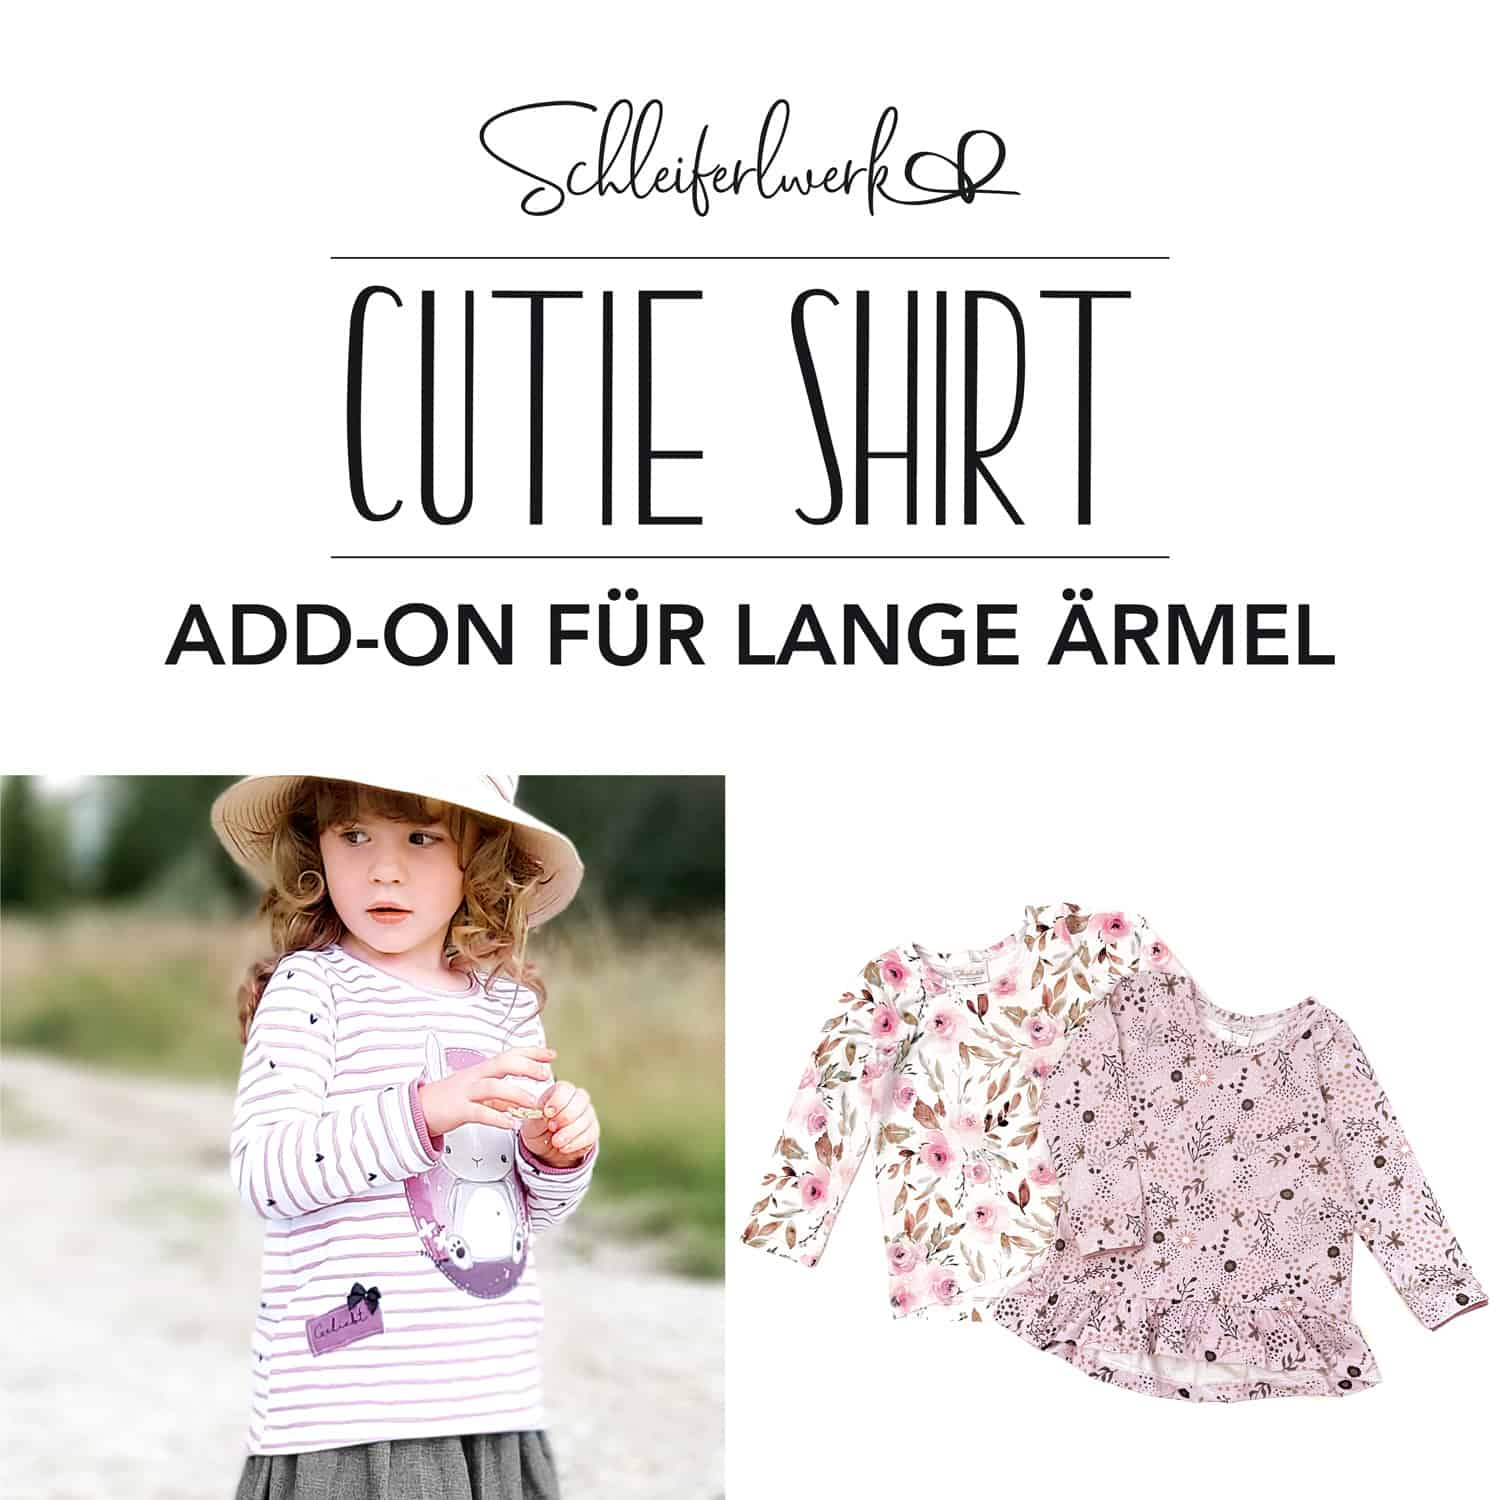 Cutie-Shirt-Langarm-Add-on